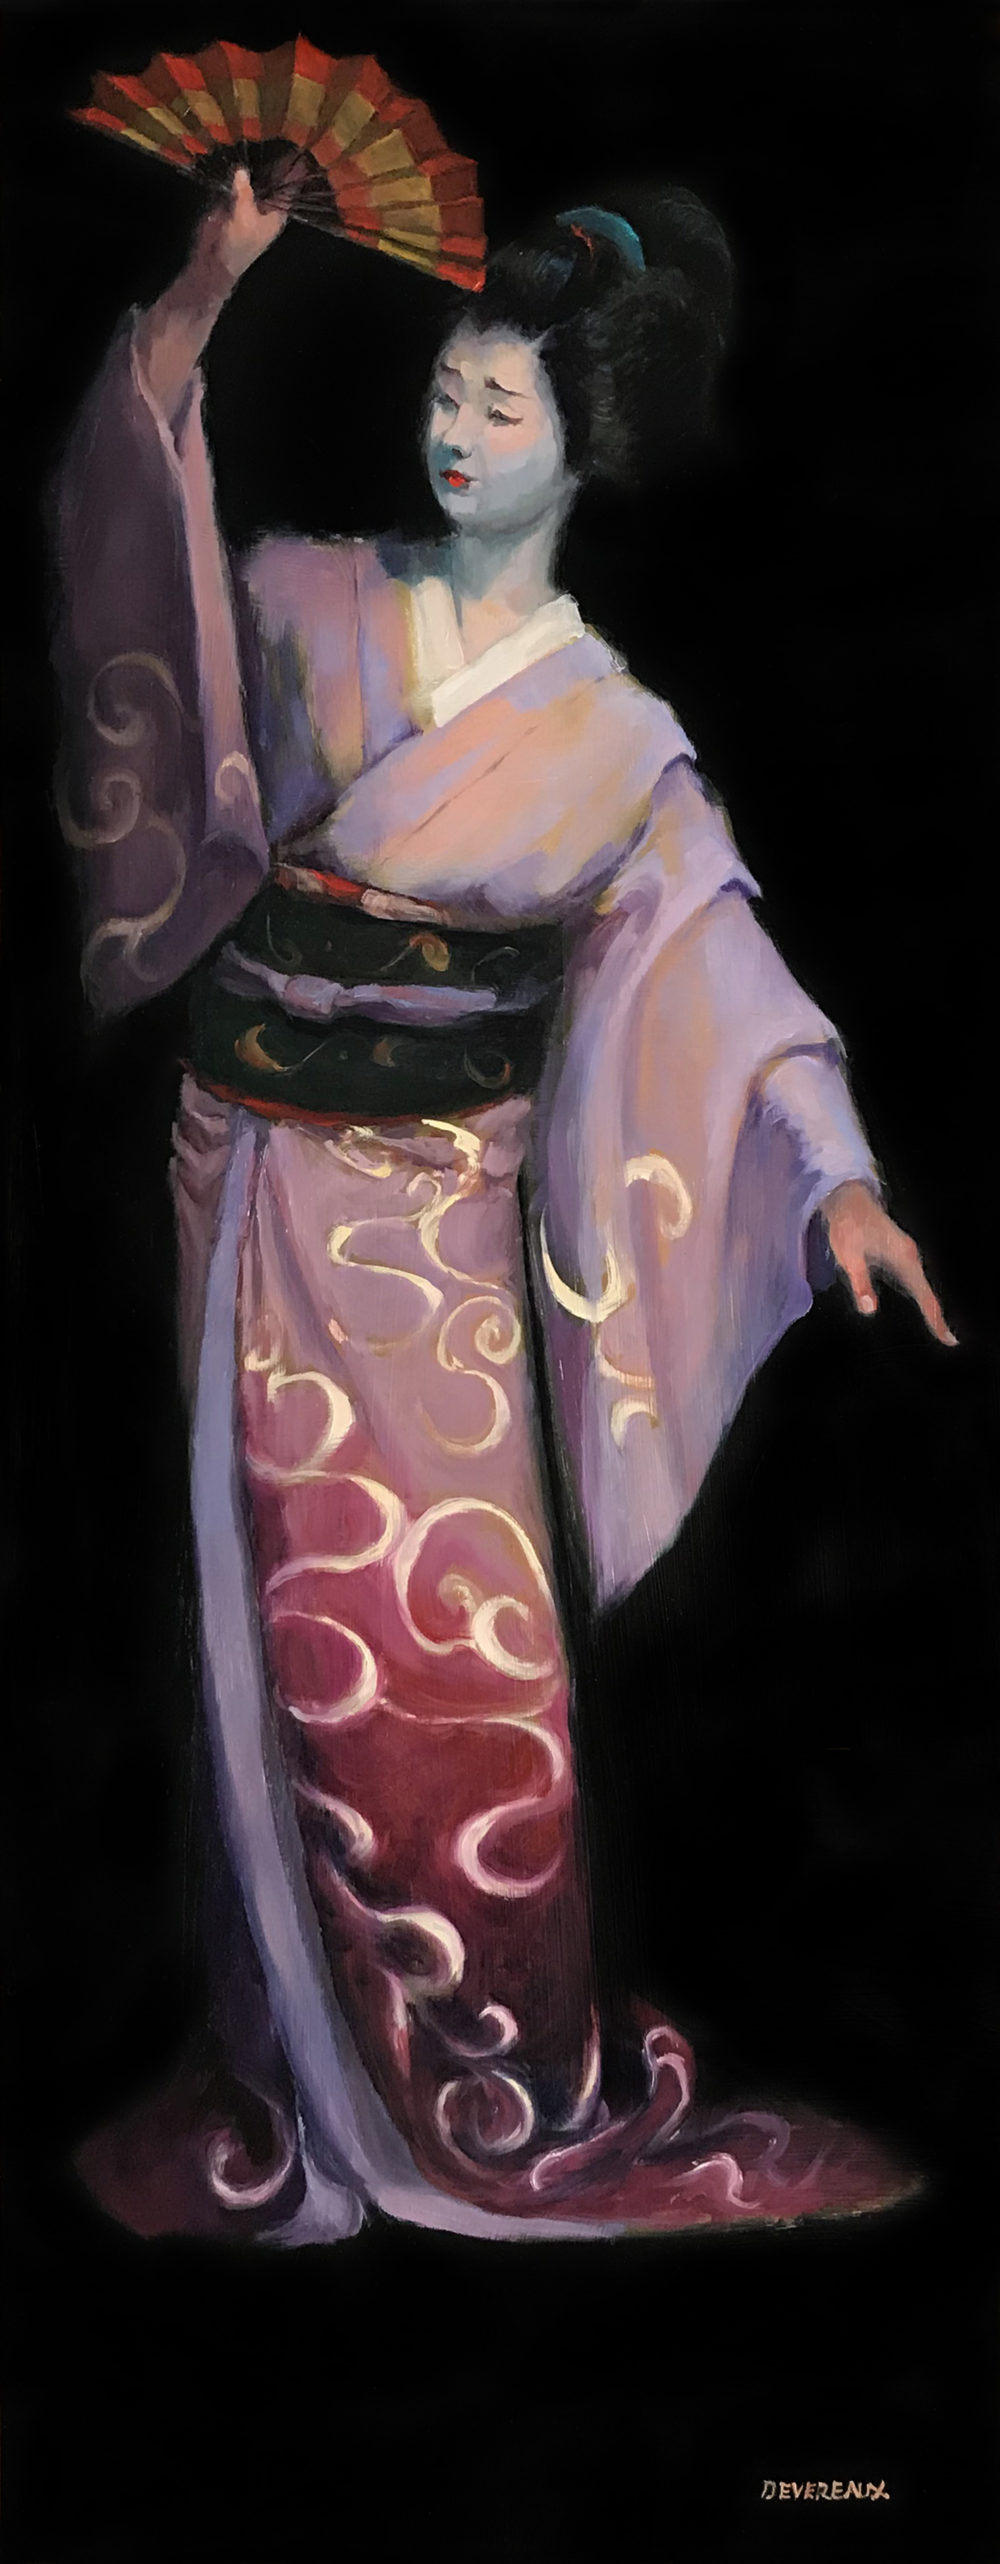 Geisha painting by carol devereaux | Felder Gallery